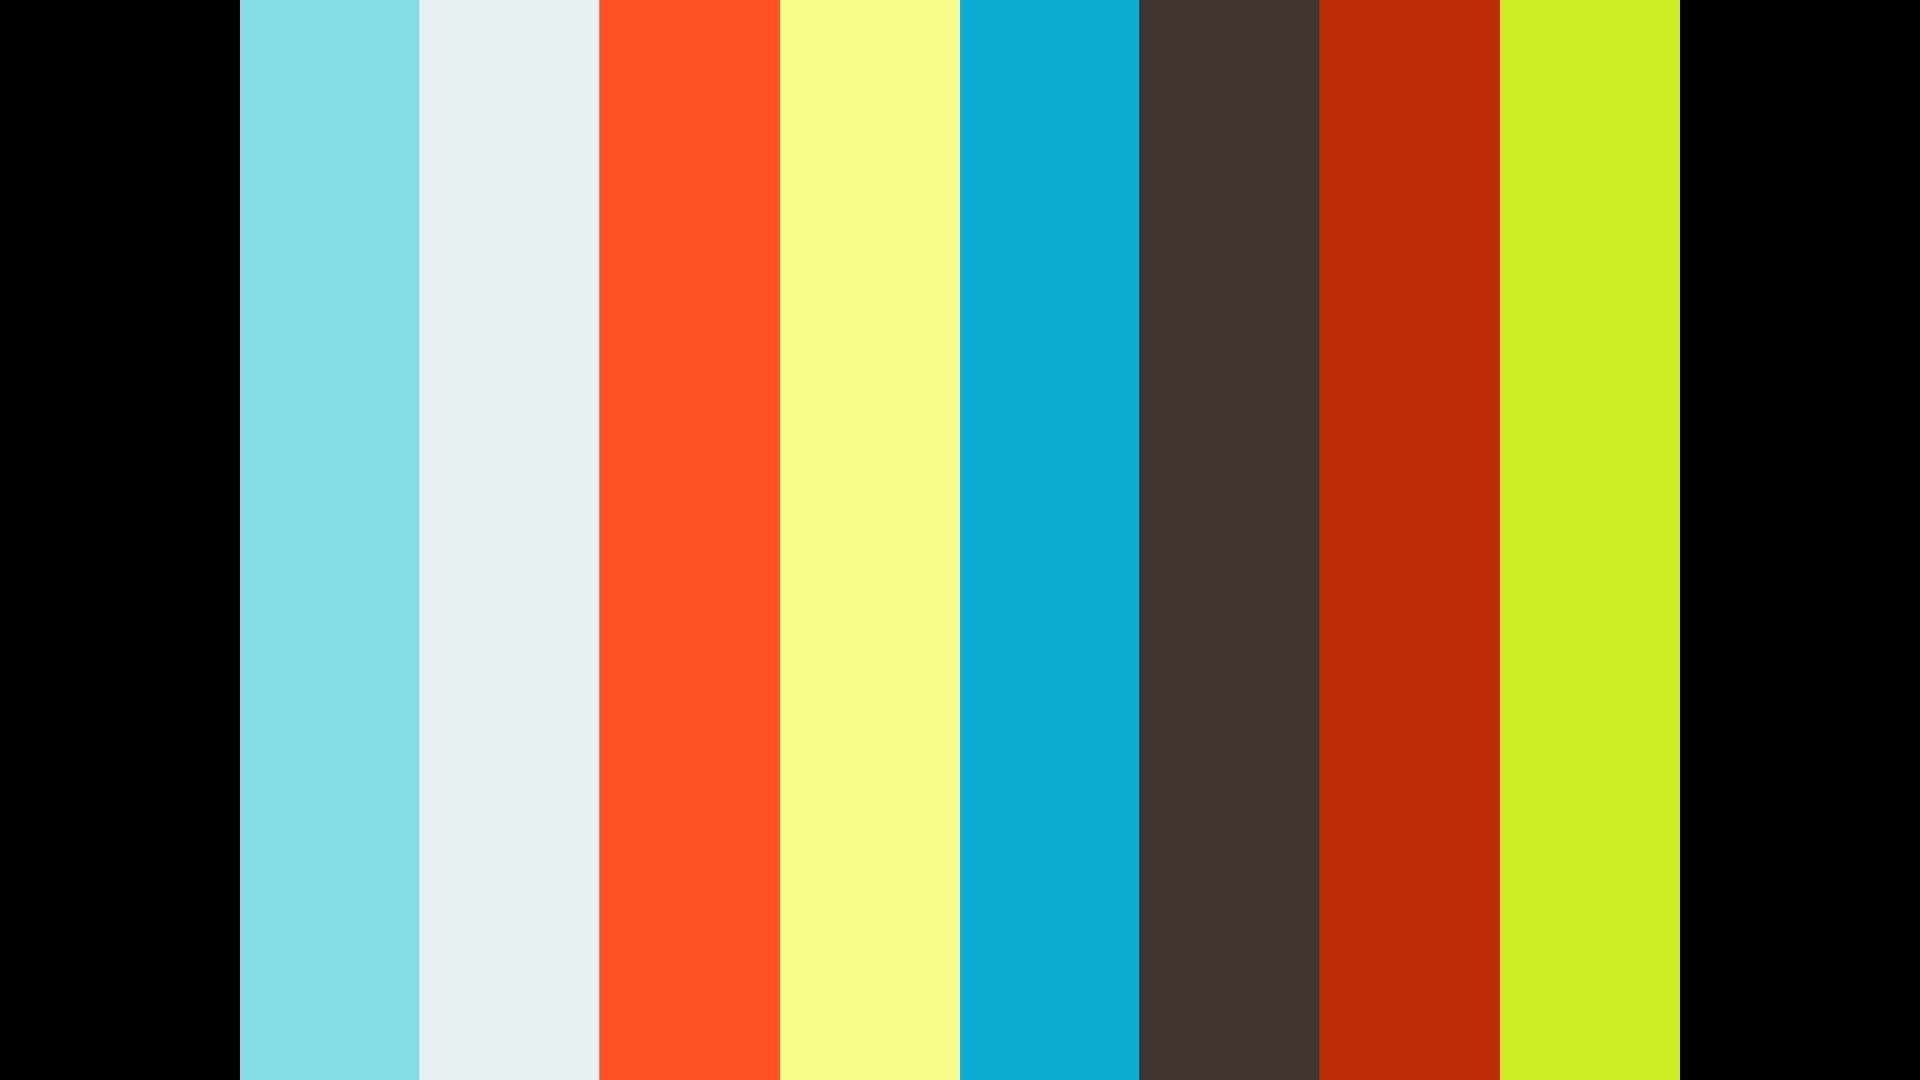 Talk 4 | The Sinning King | Still Waiting for the True King